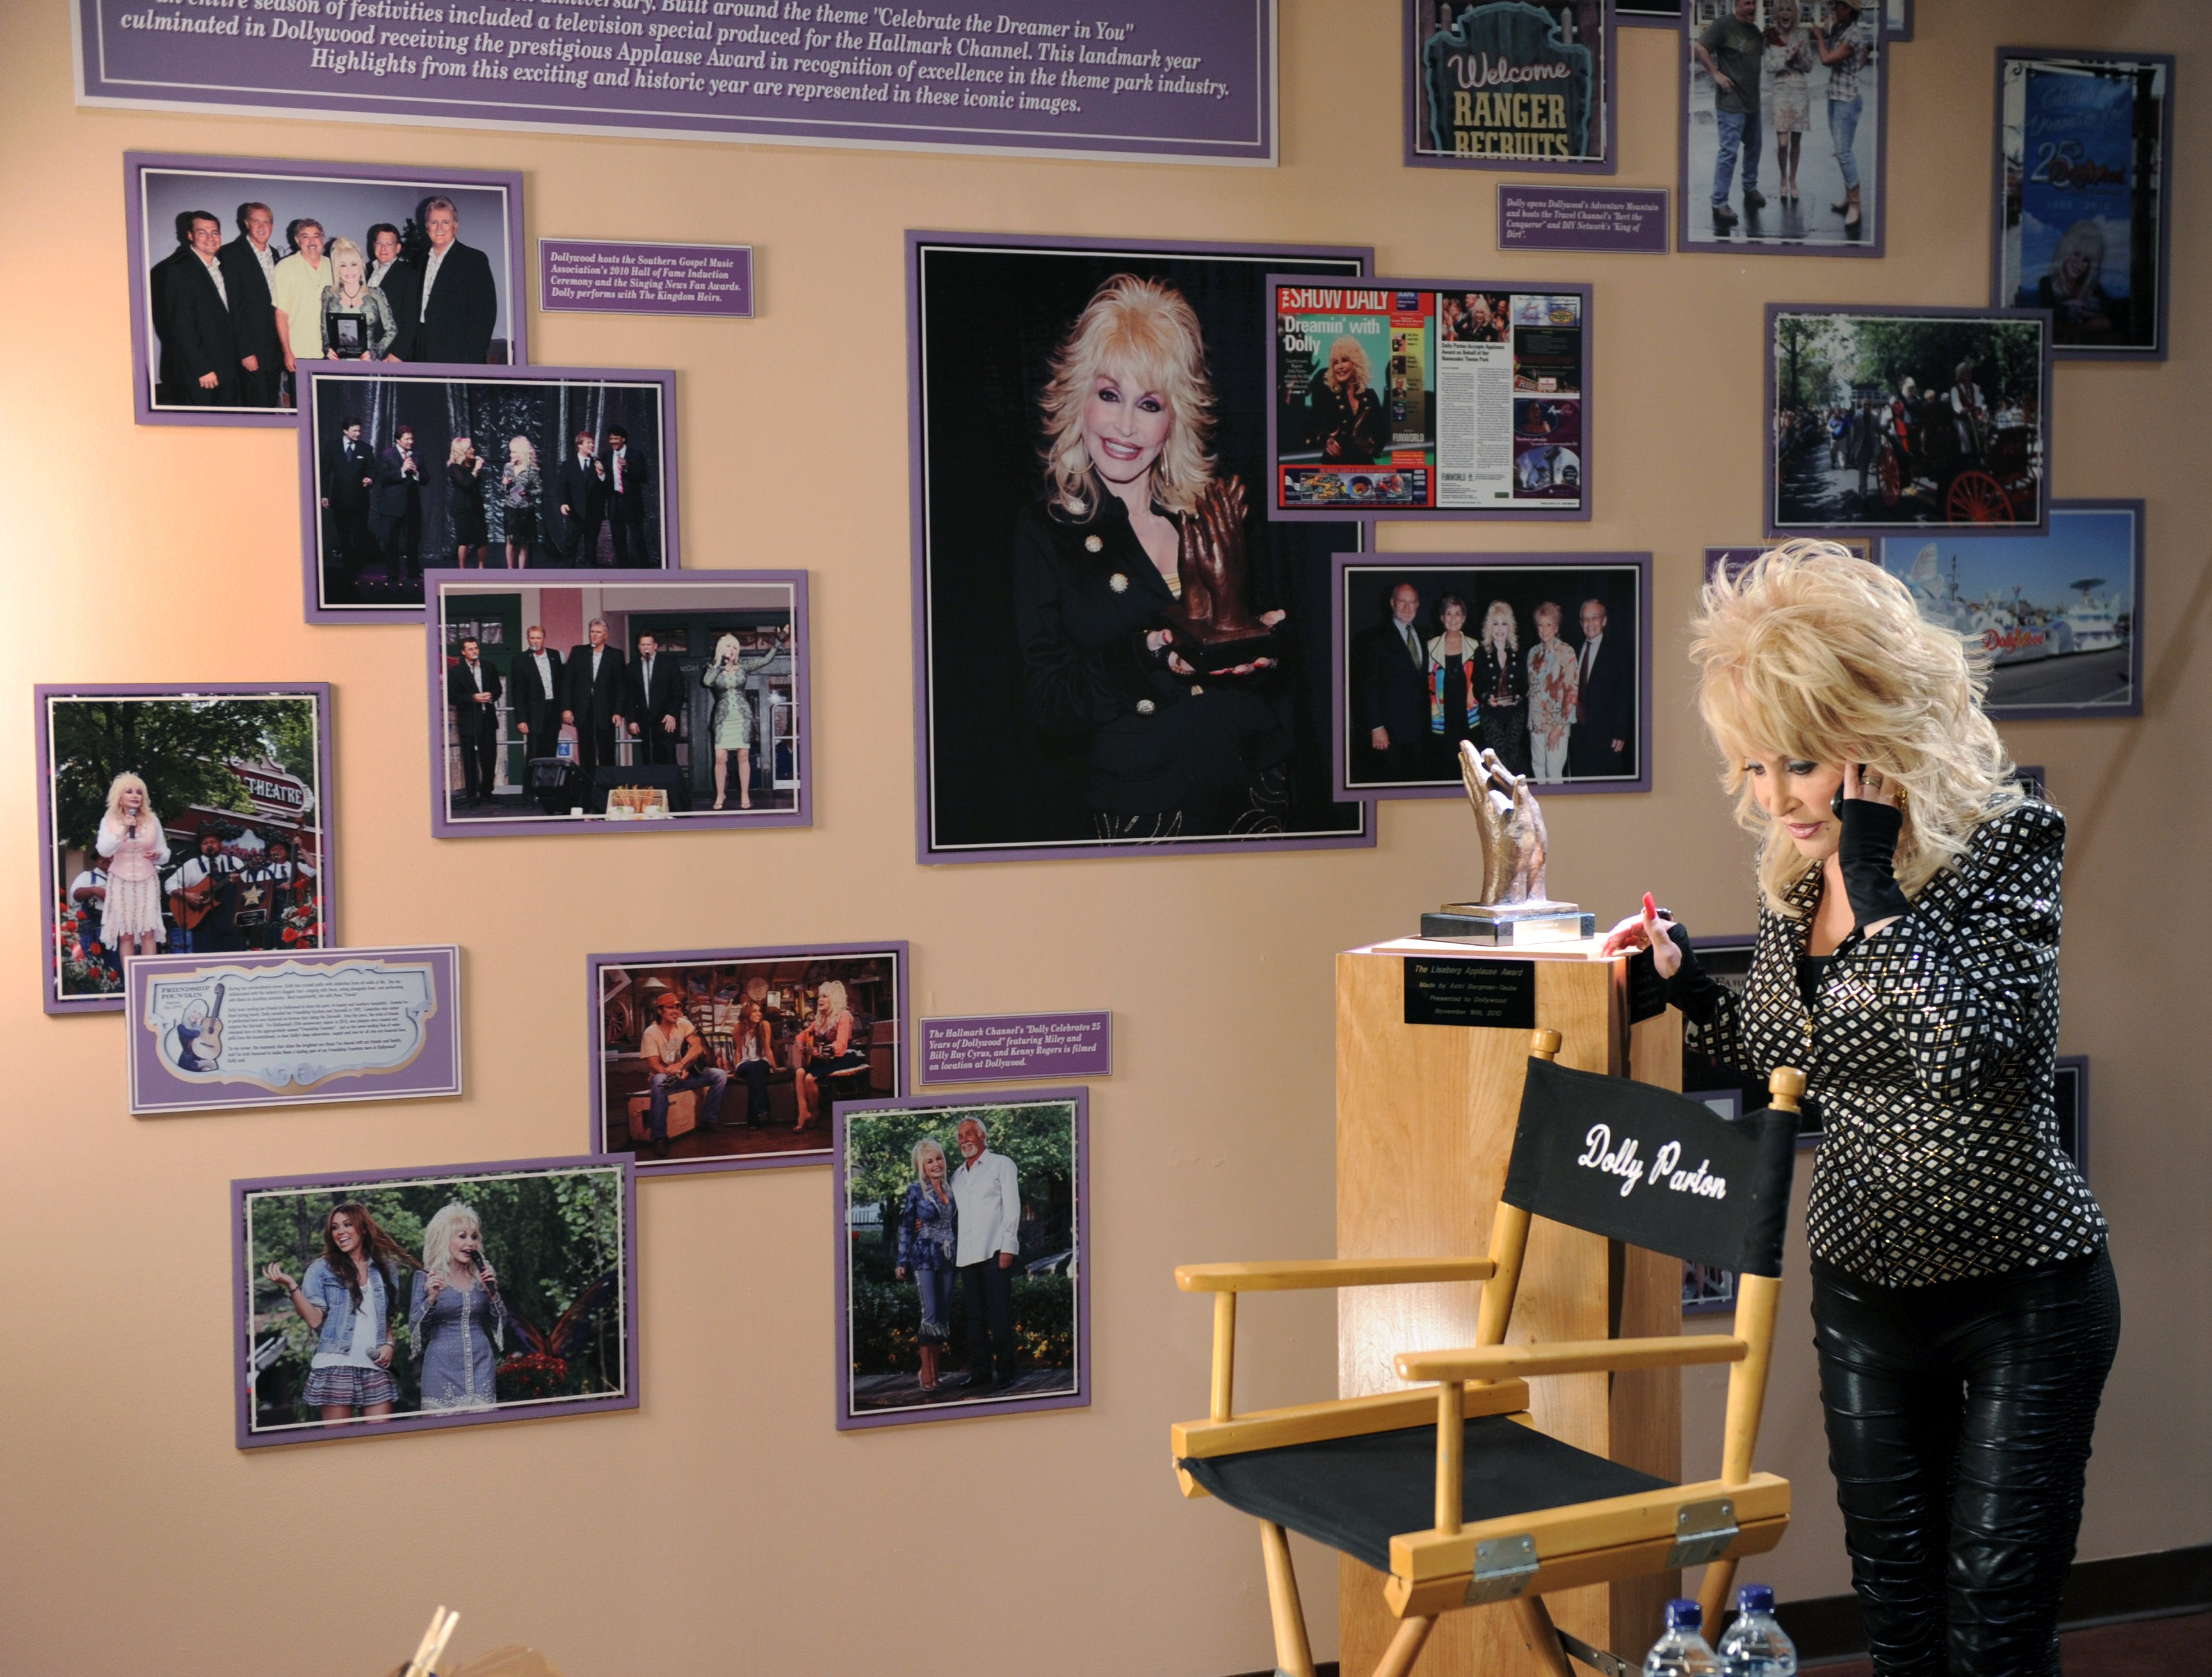 Dolly Parton takes a quick phone call Friday, May. 6, 2011 in between interviews talking about Dollywood winning The Liseberg Applause Award.